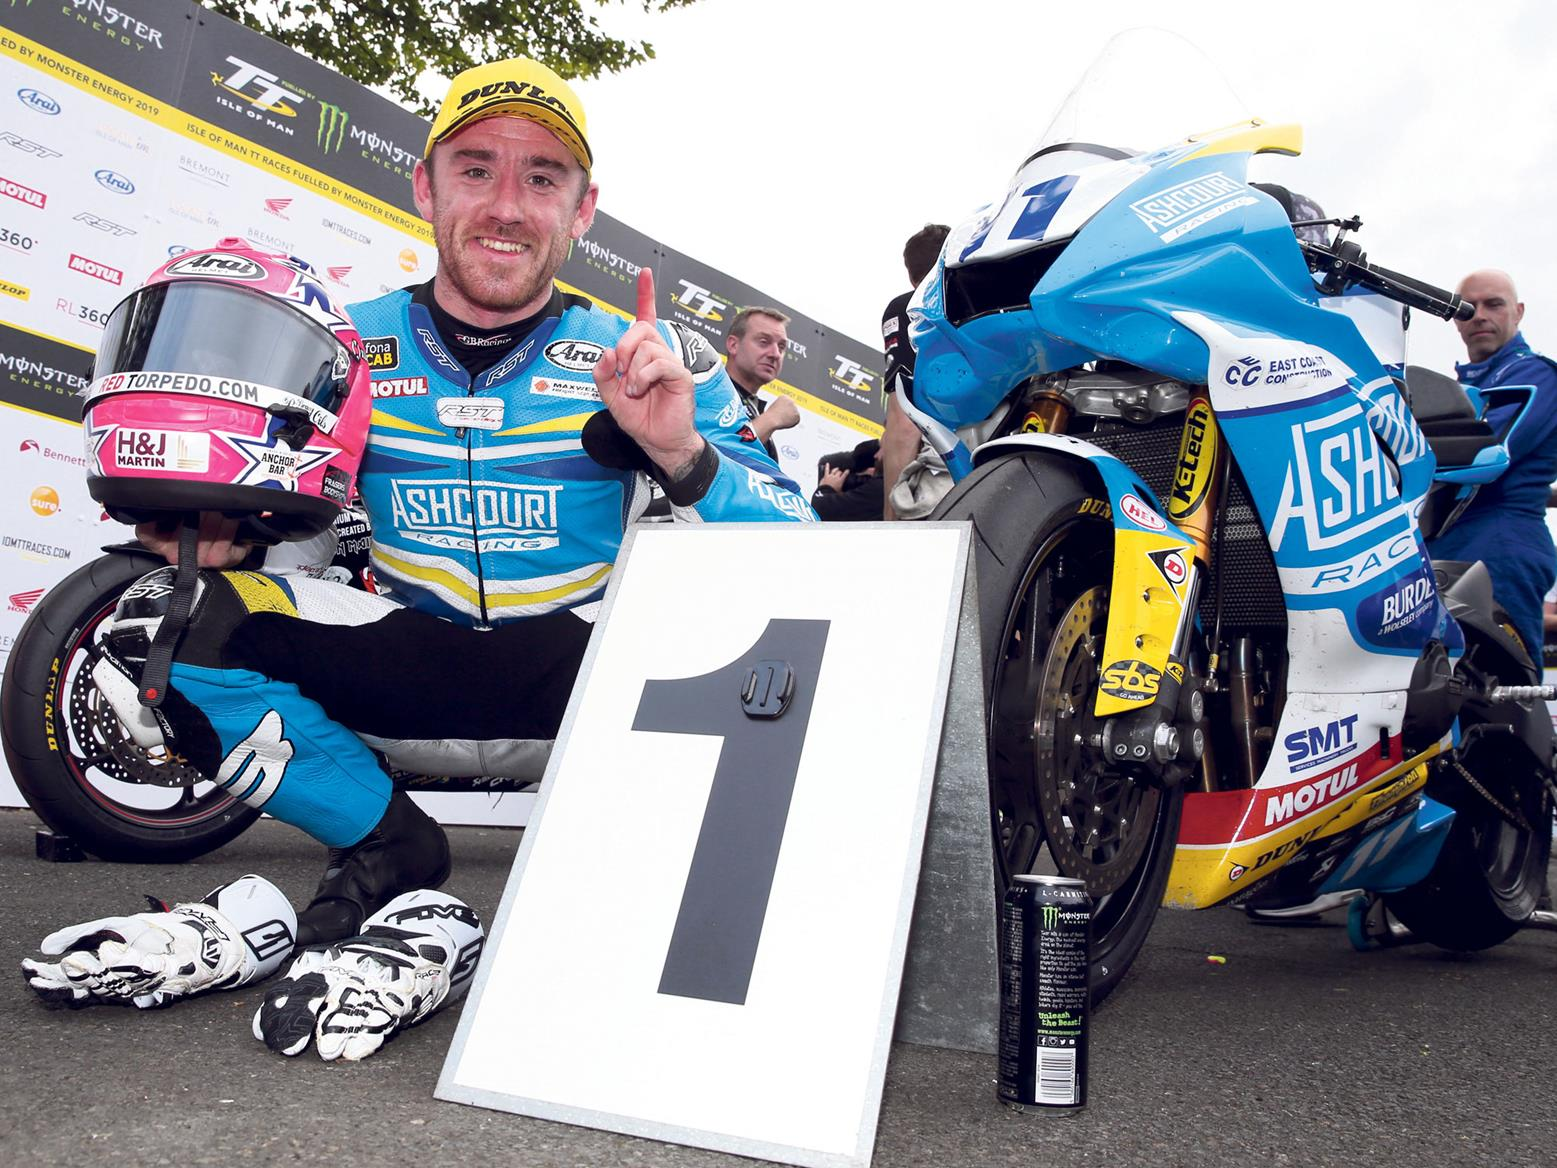 Lee Johnston wins 2019 IoM TT Supersport race